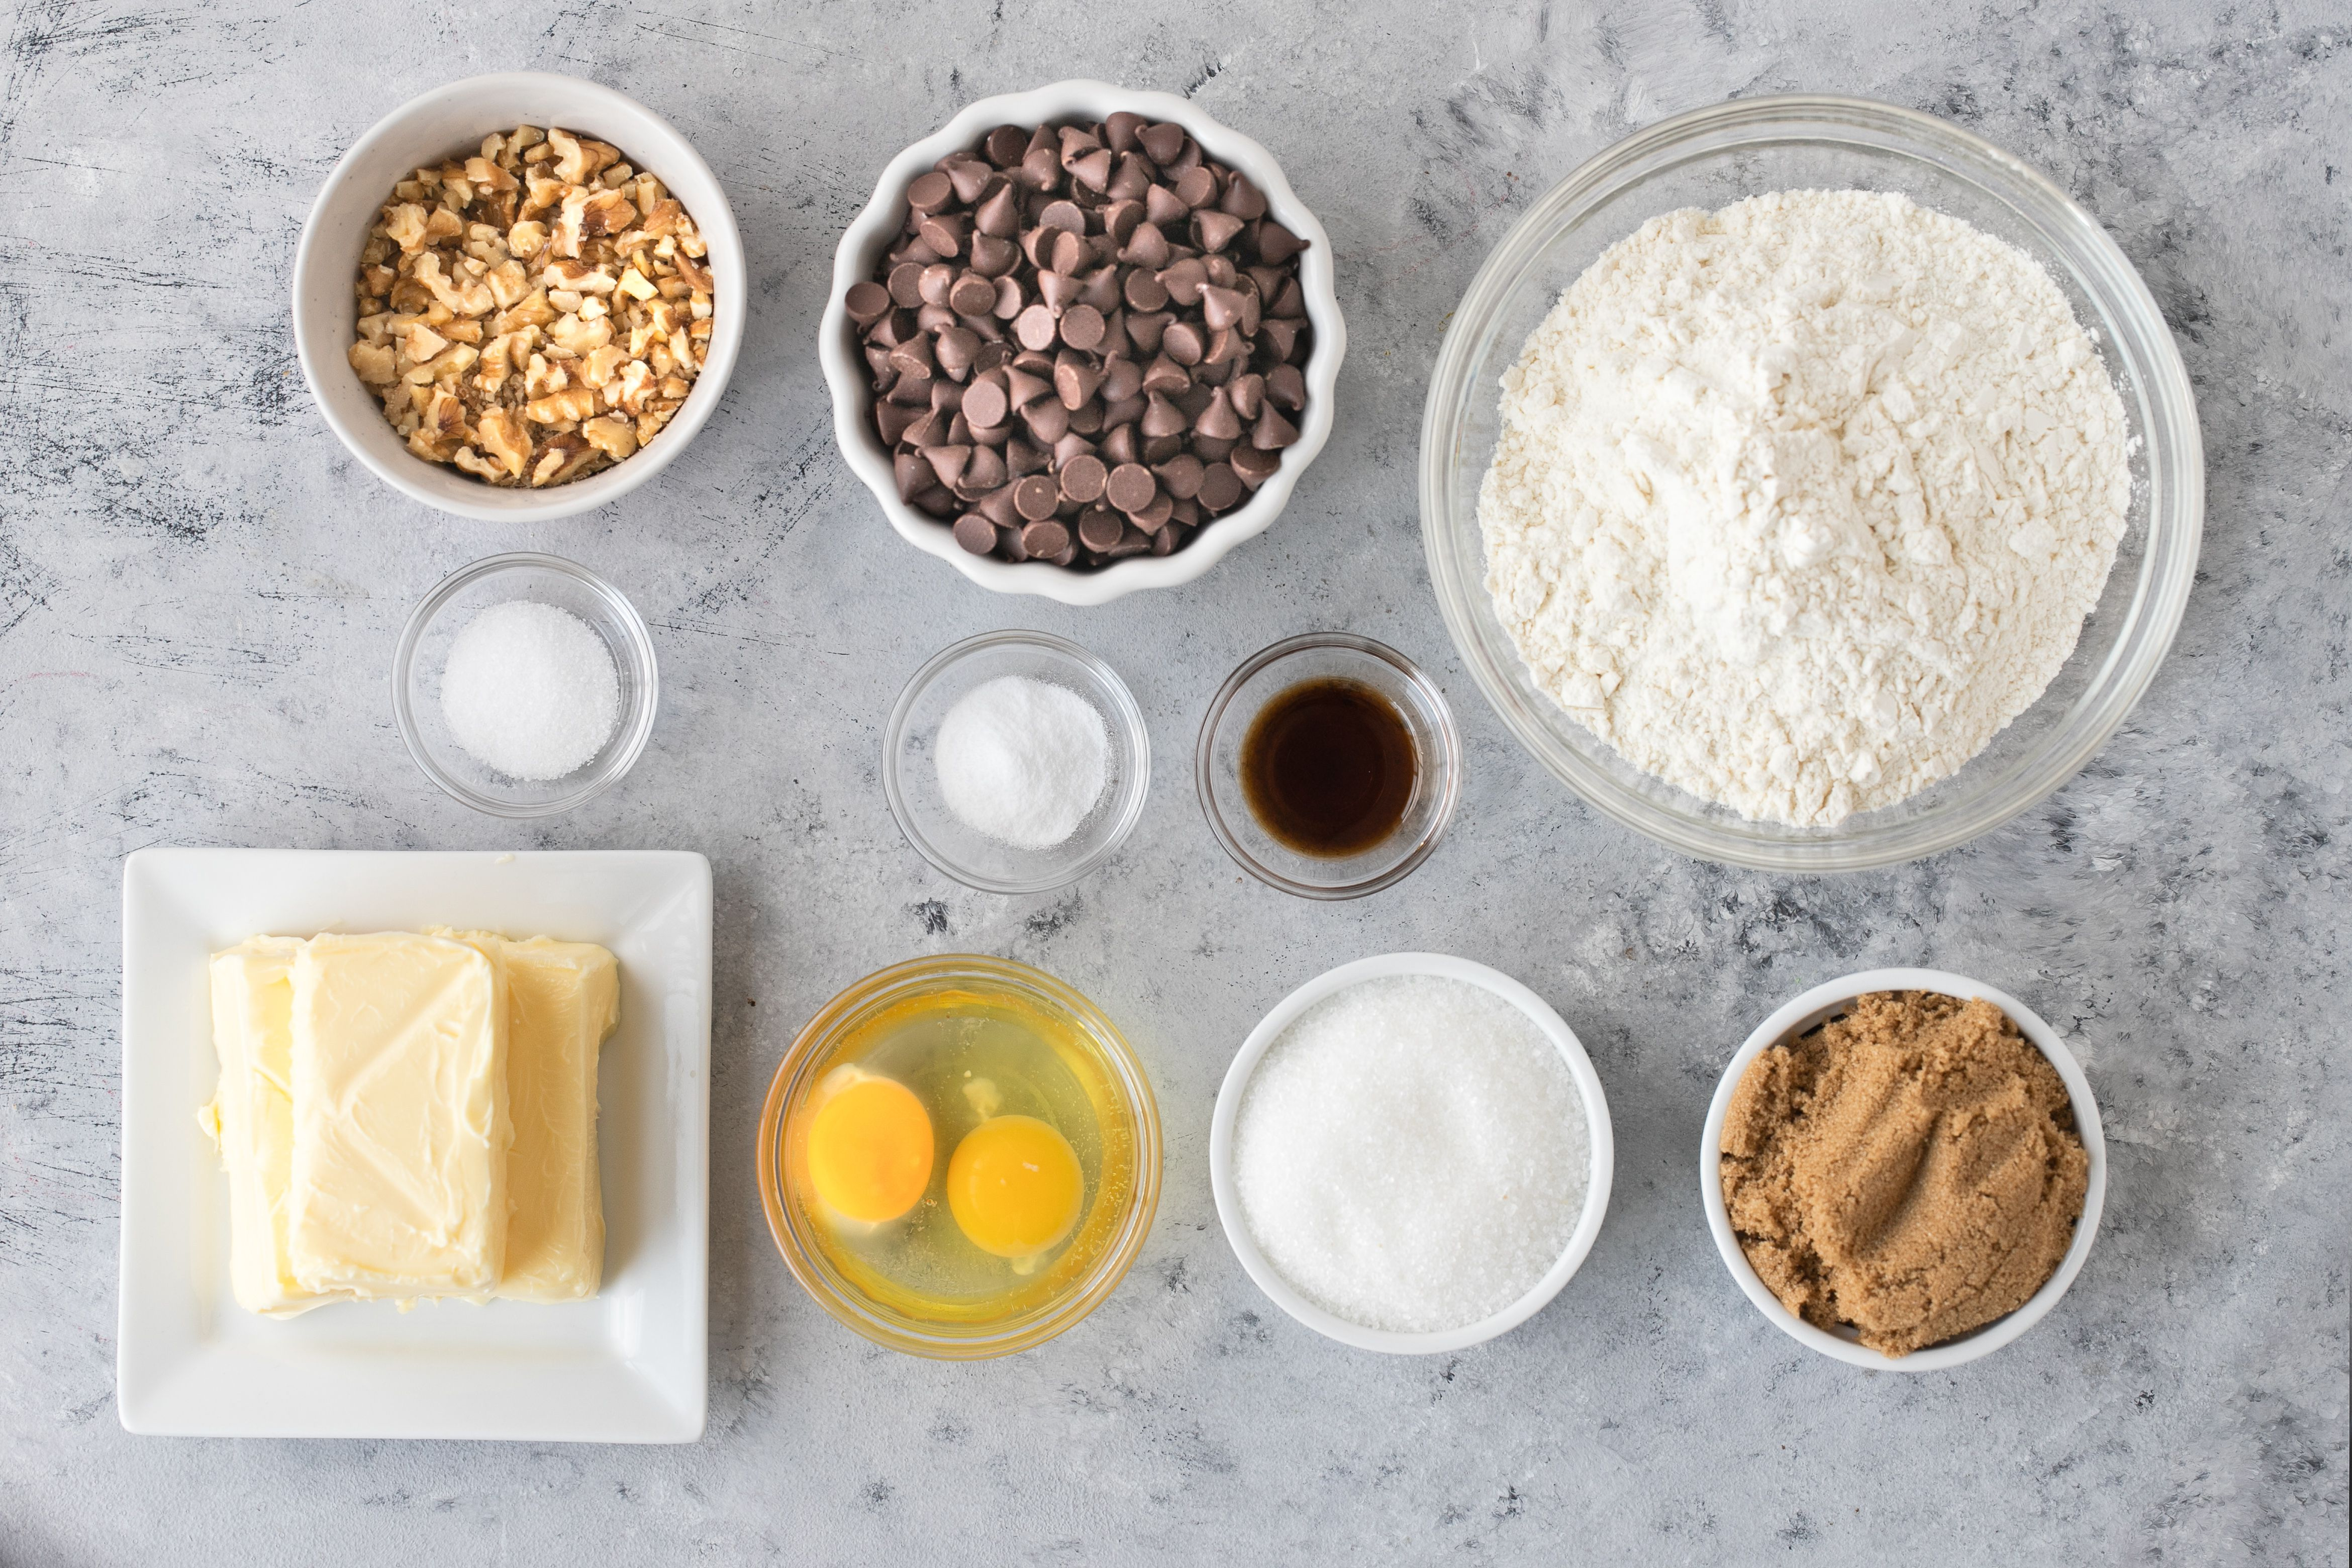 Toll House Chocolate Chip Cookie Recipe ingredients